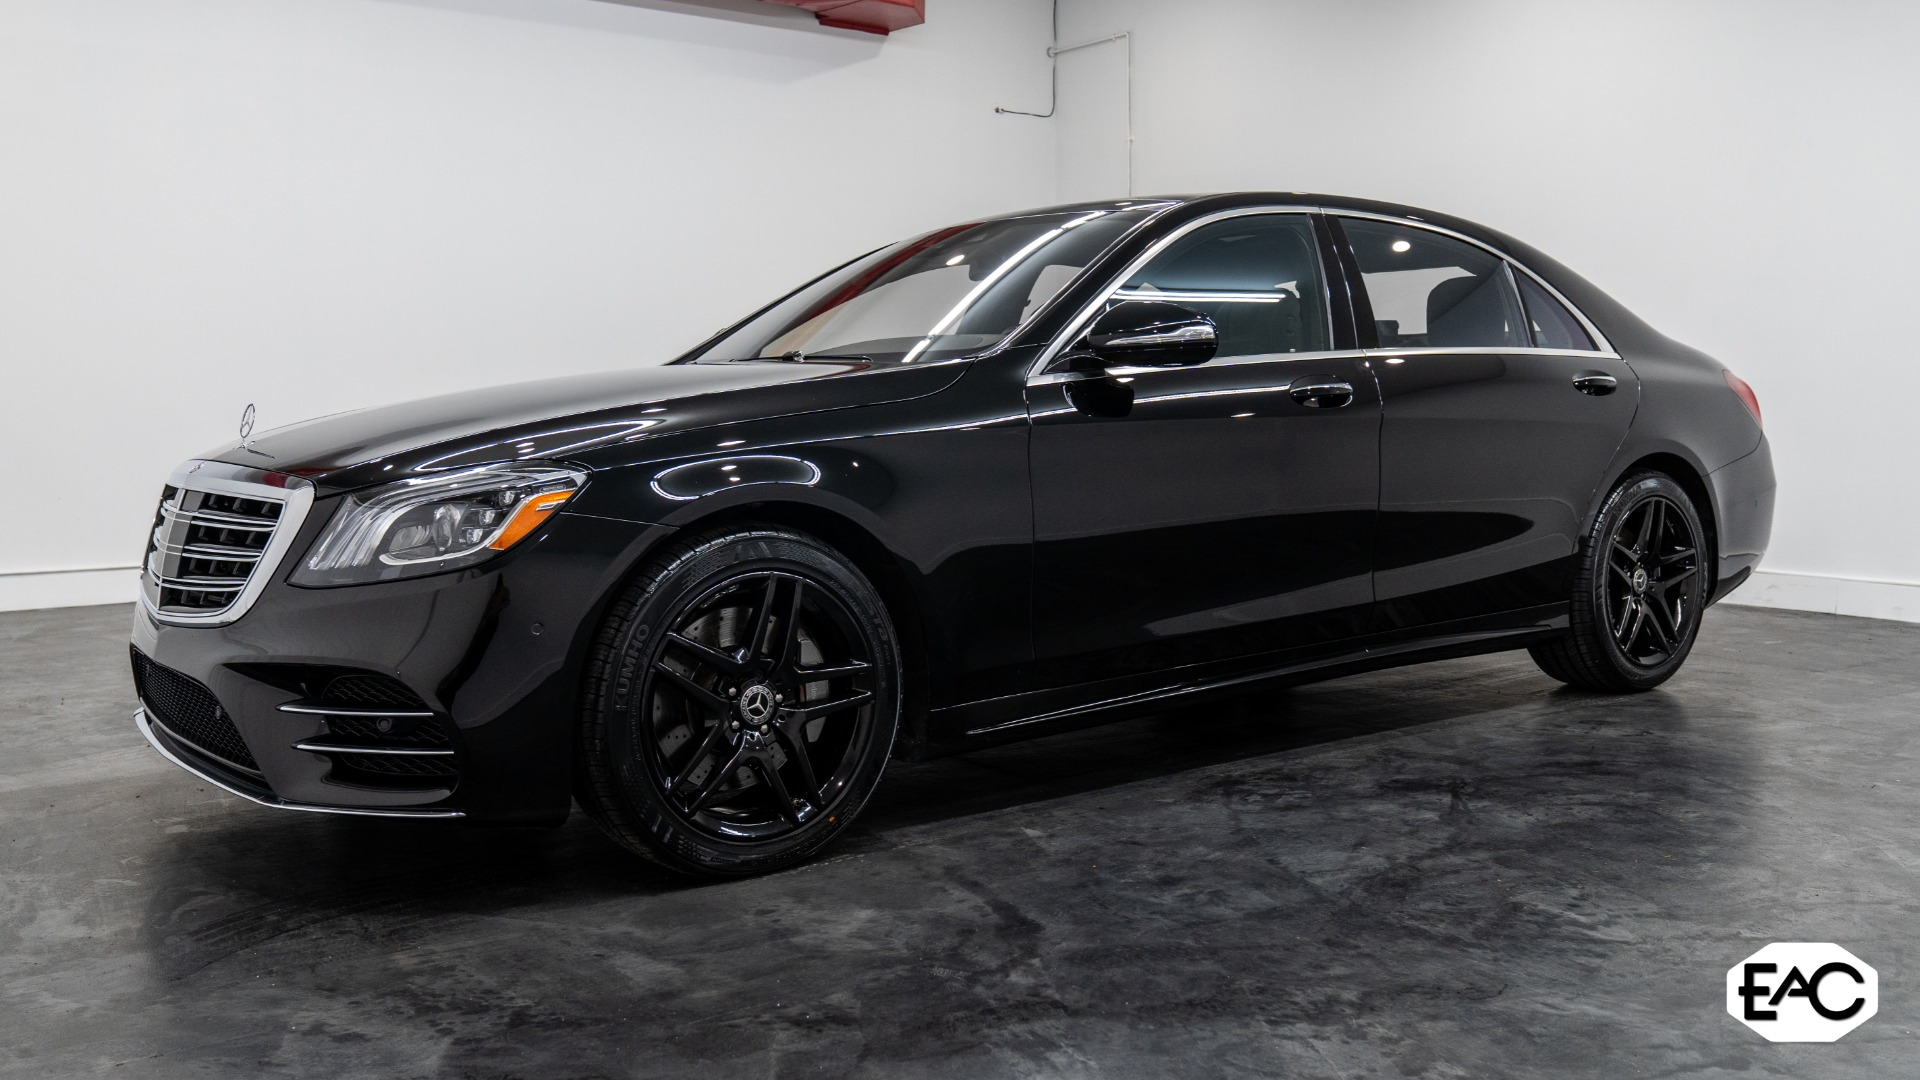 Used 2018 Mercedes-Benz S-Class S 450 4MATIC for sale $59,990 at Empire Auto Collection in Warren MI 48091 1